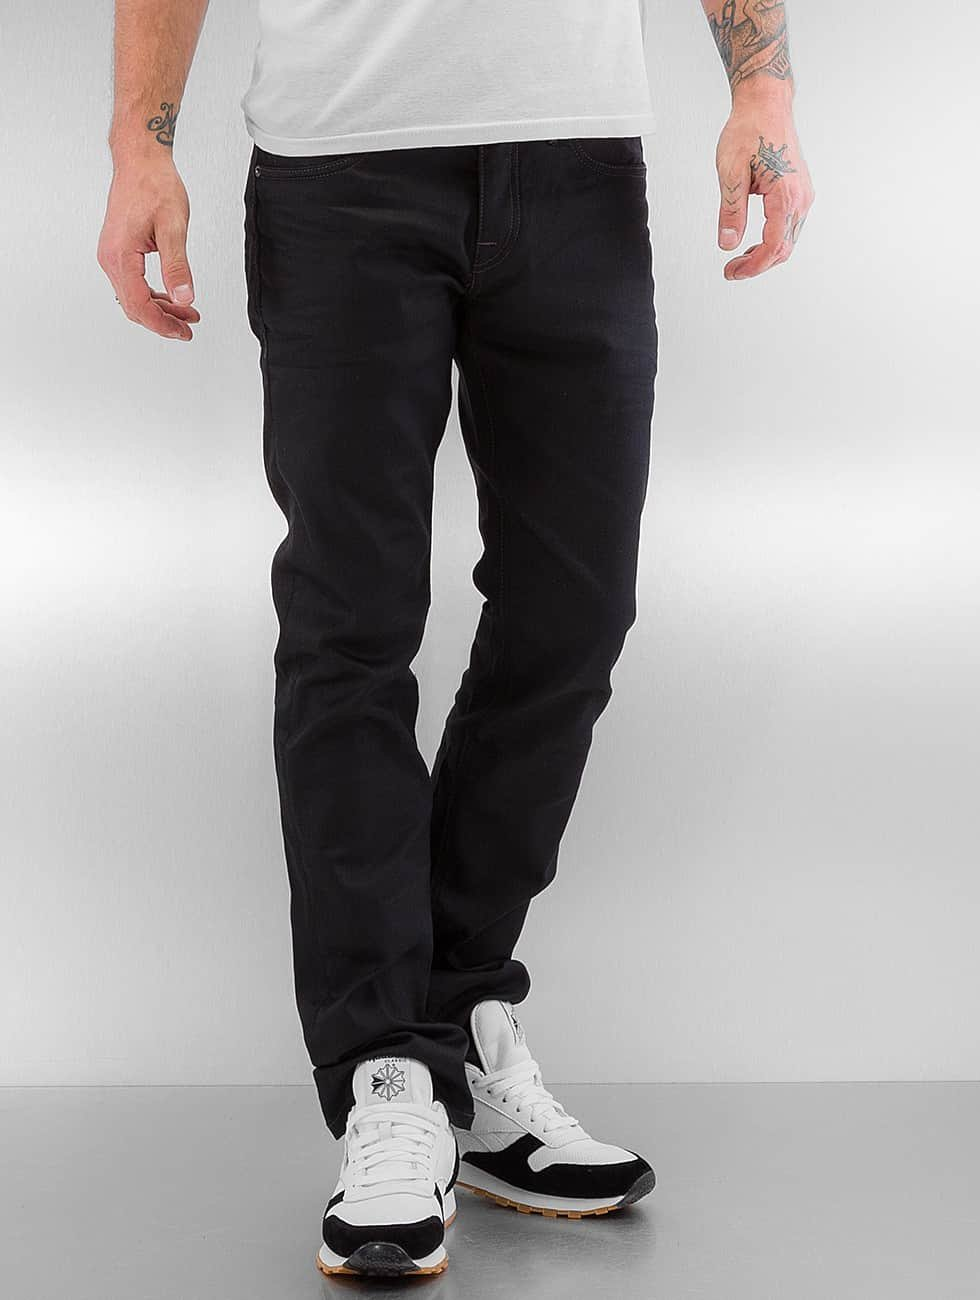 Jack & Jones Straight Fit Jeans jjIclark jjOriginal JOS 935 LID black